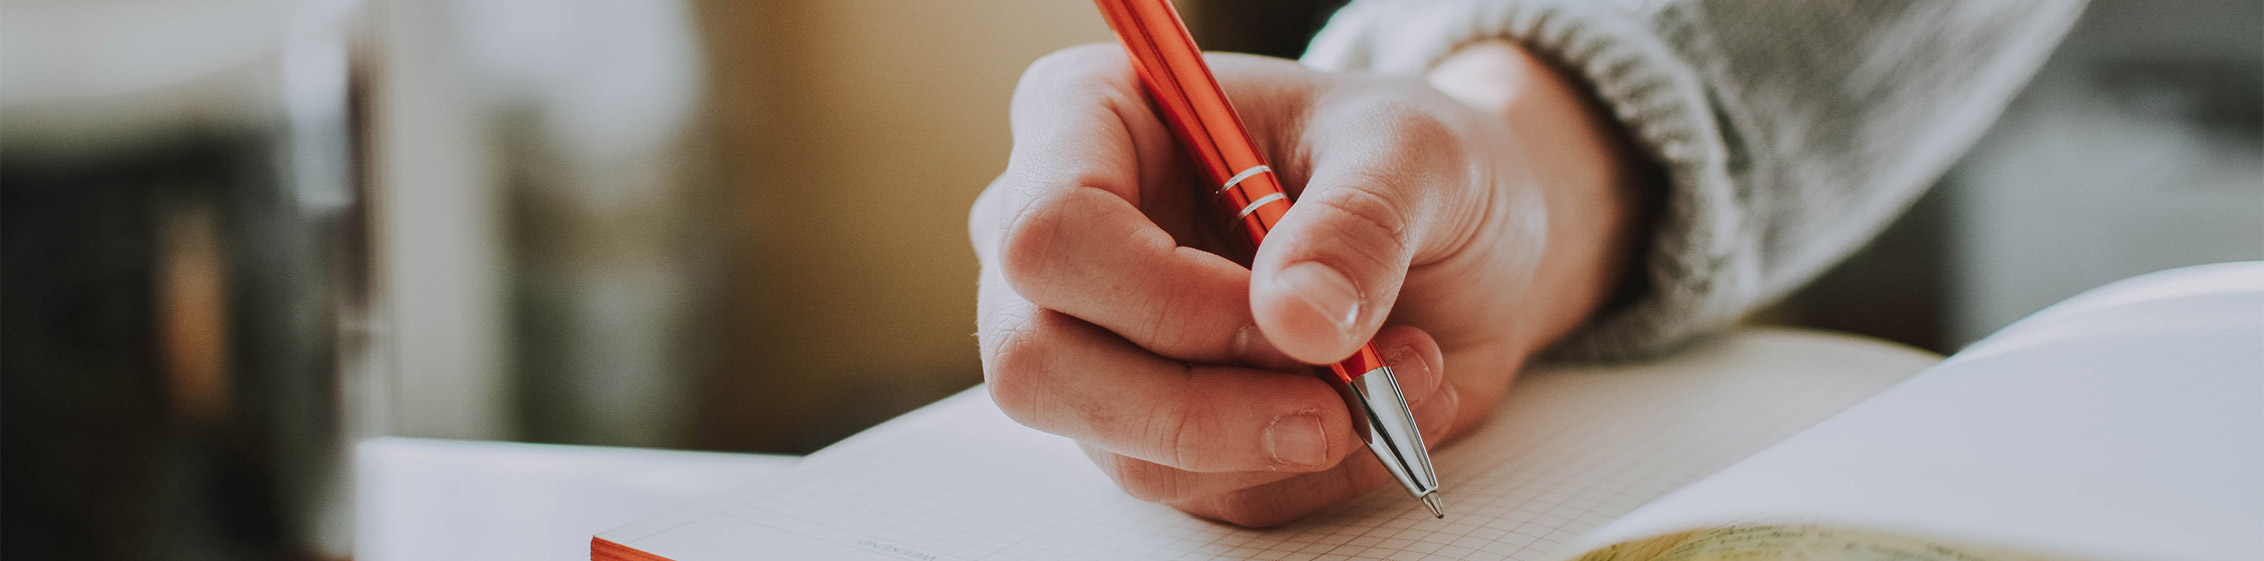 7 Easy Tricks To Become A Professional Self Editor